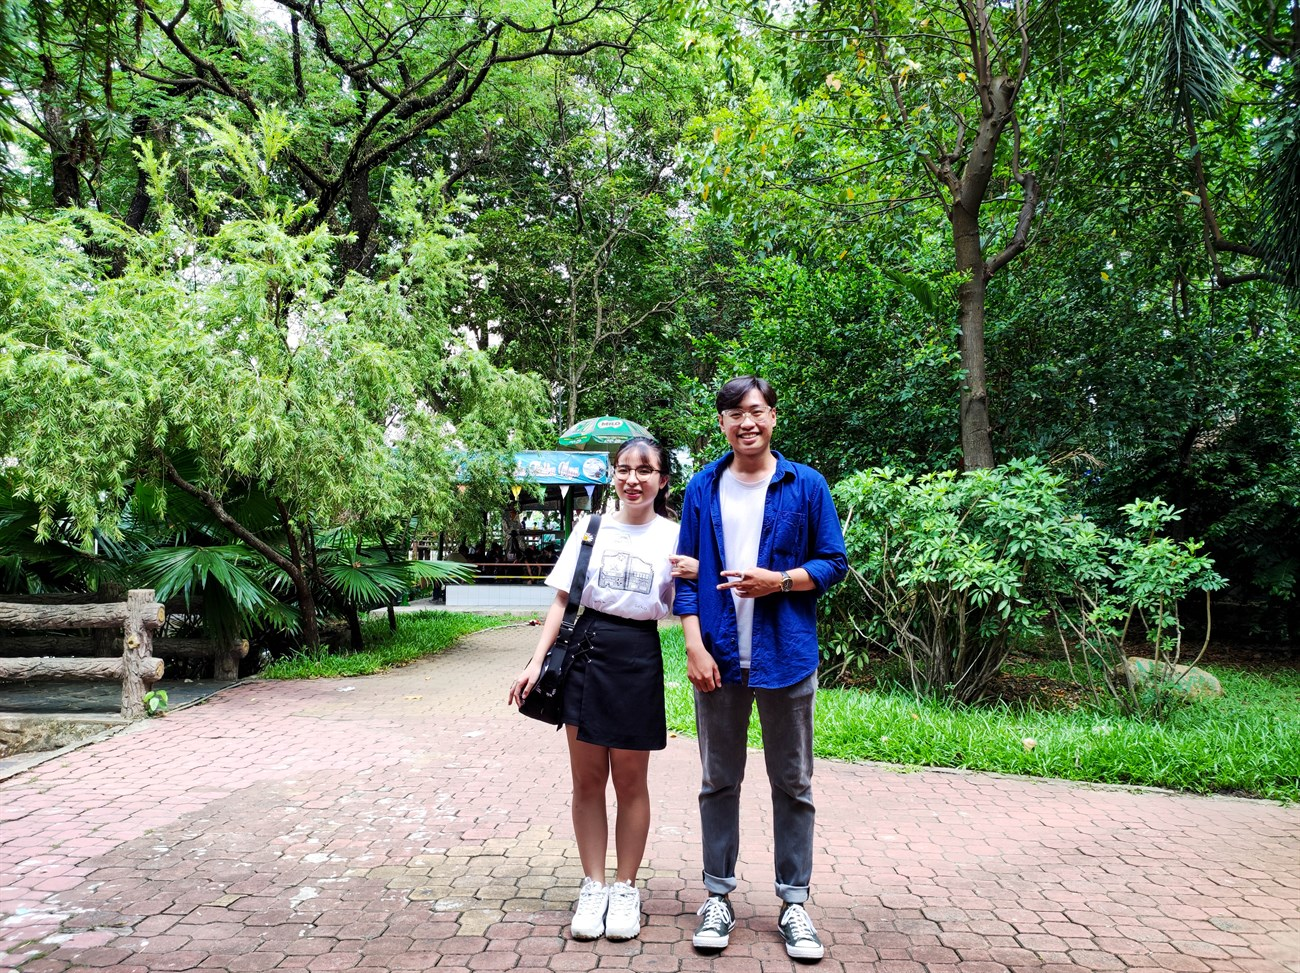 Finally, I got a sister on the street to take a picture of us